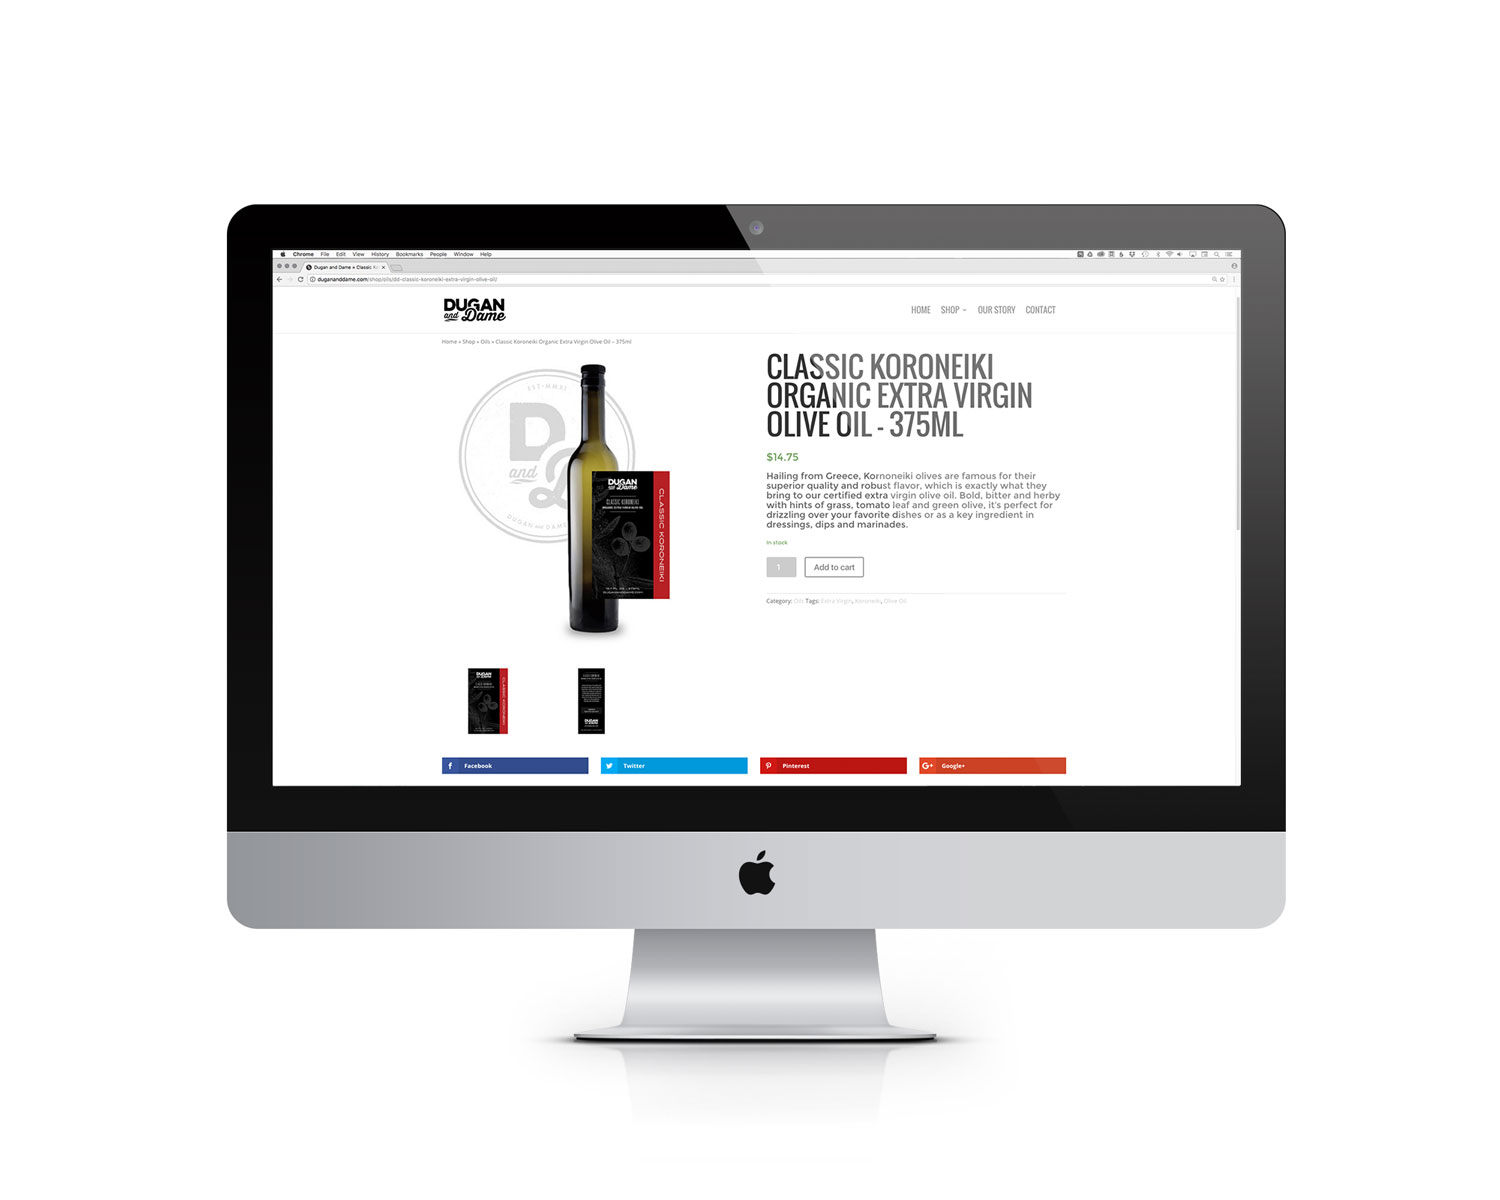 Dugan and Dame Website Product Page